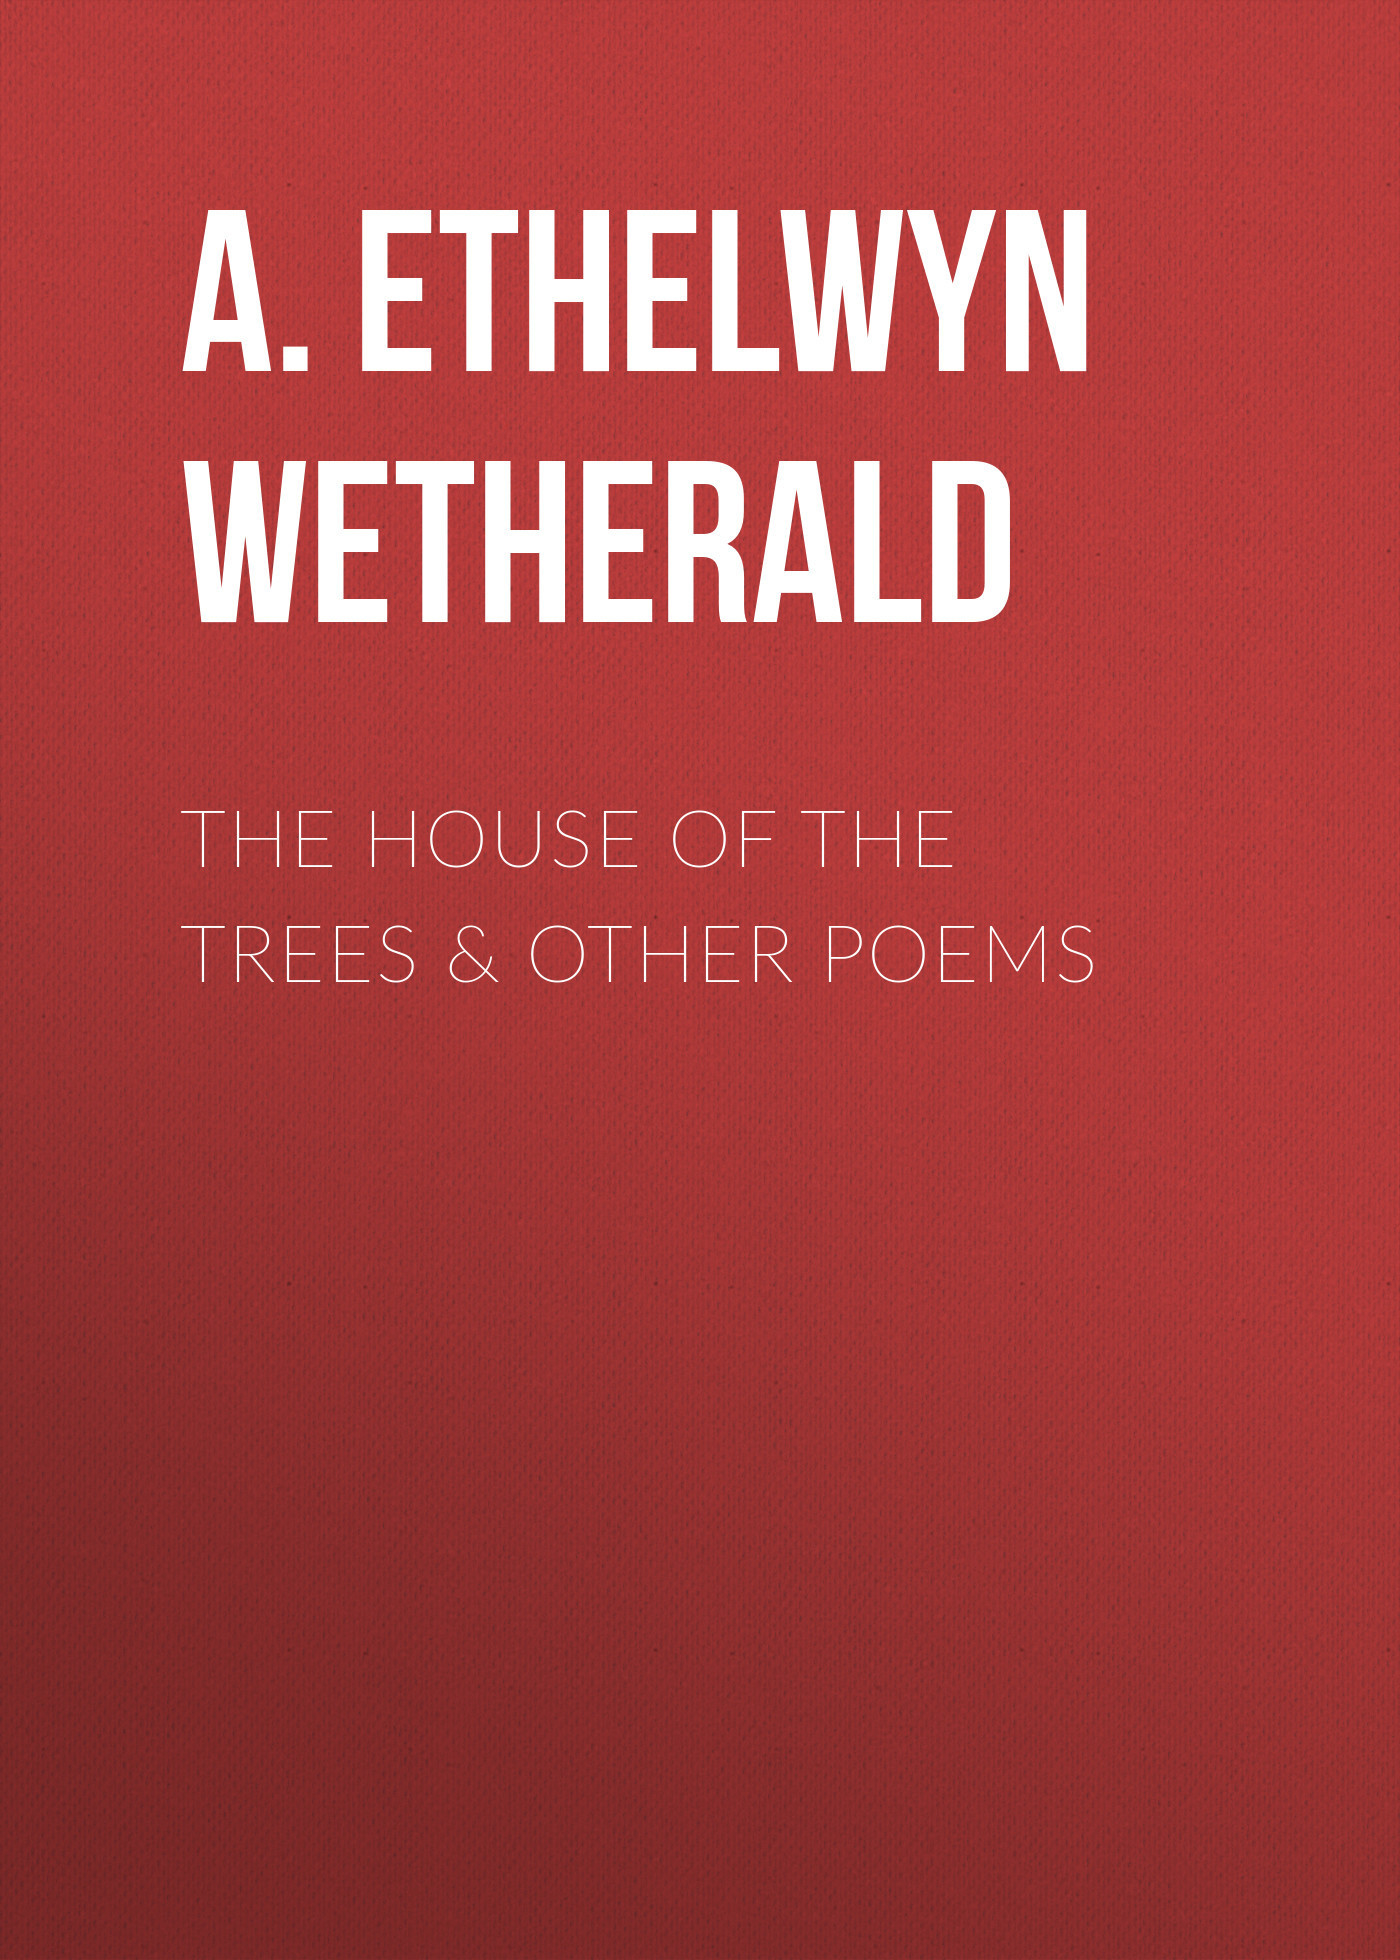 A. Ethelwyn Wetherald The House of the Trees & Other Poems